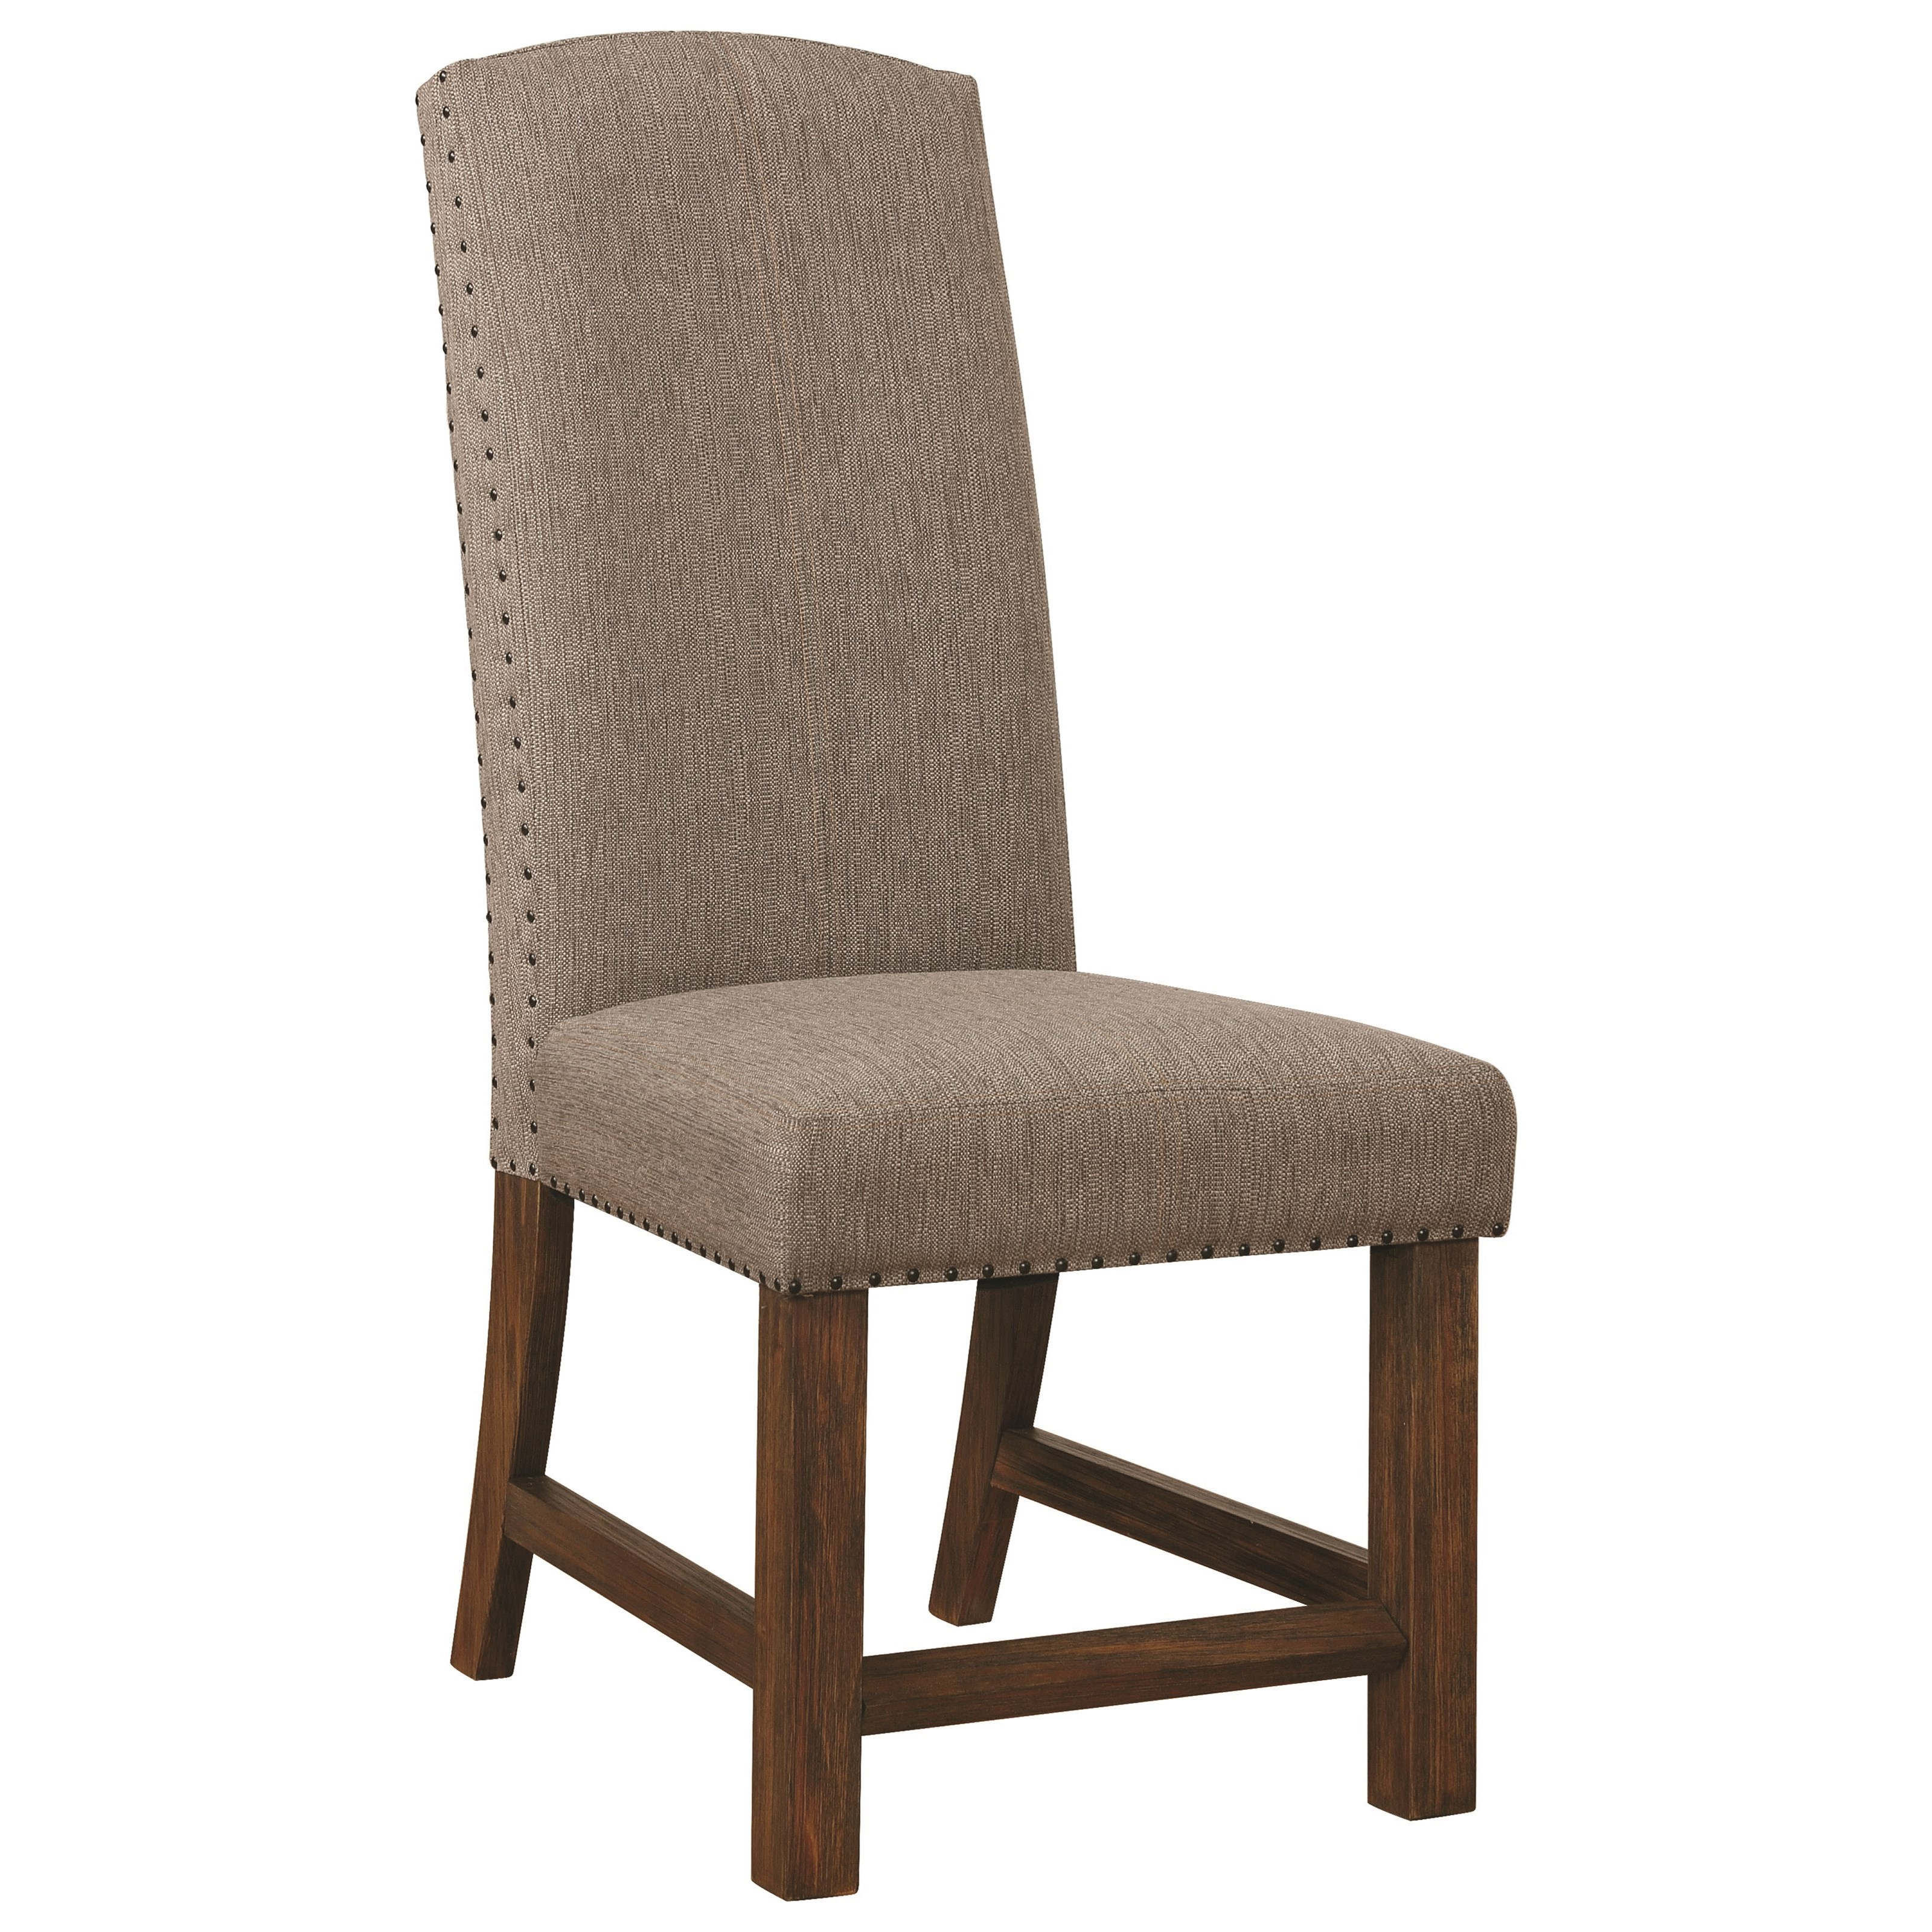 Scott Living Atwater Side Chair - Item Number: 107724